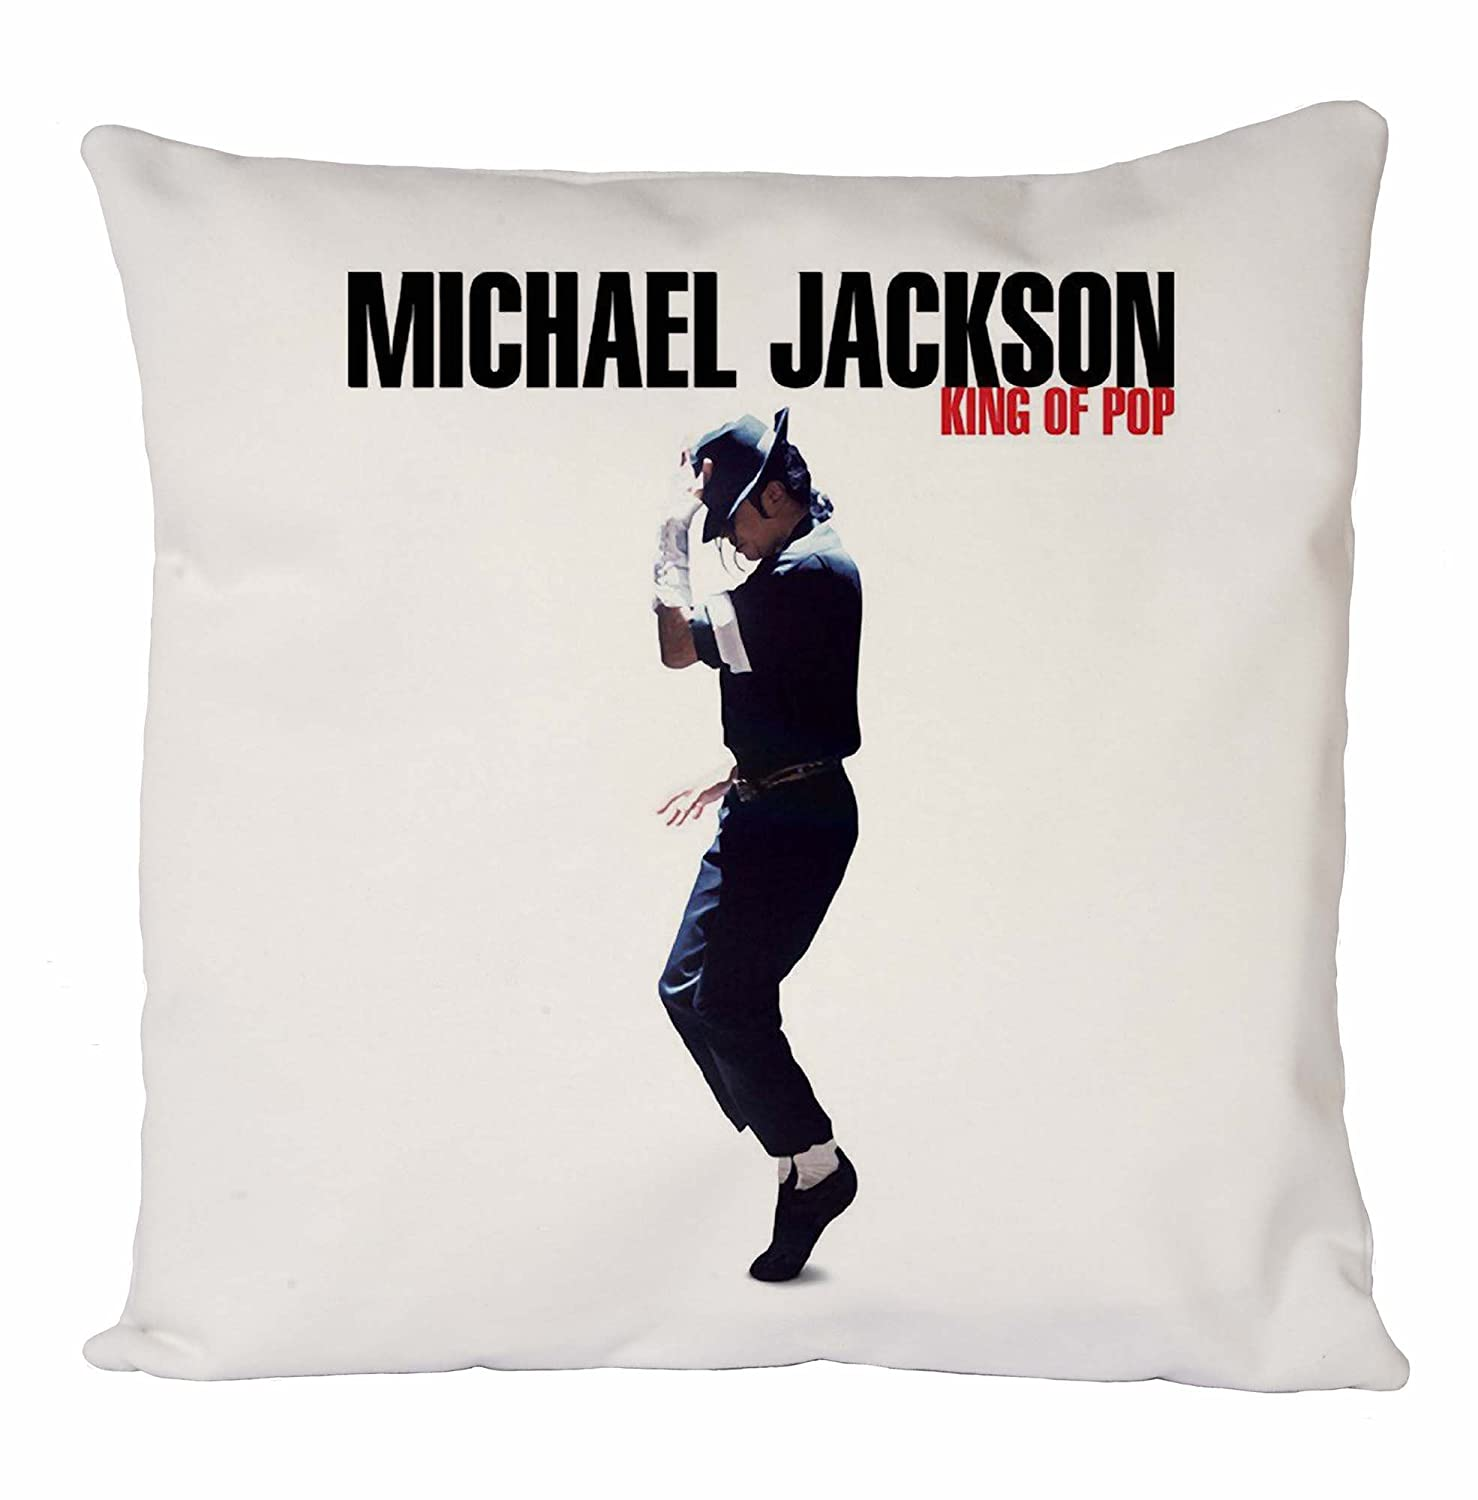 Michael Jackson King of Pop, Fodera, Fodera per Cuscino, Arredamento per la casa Uk print king